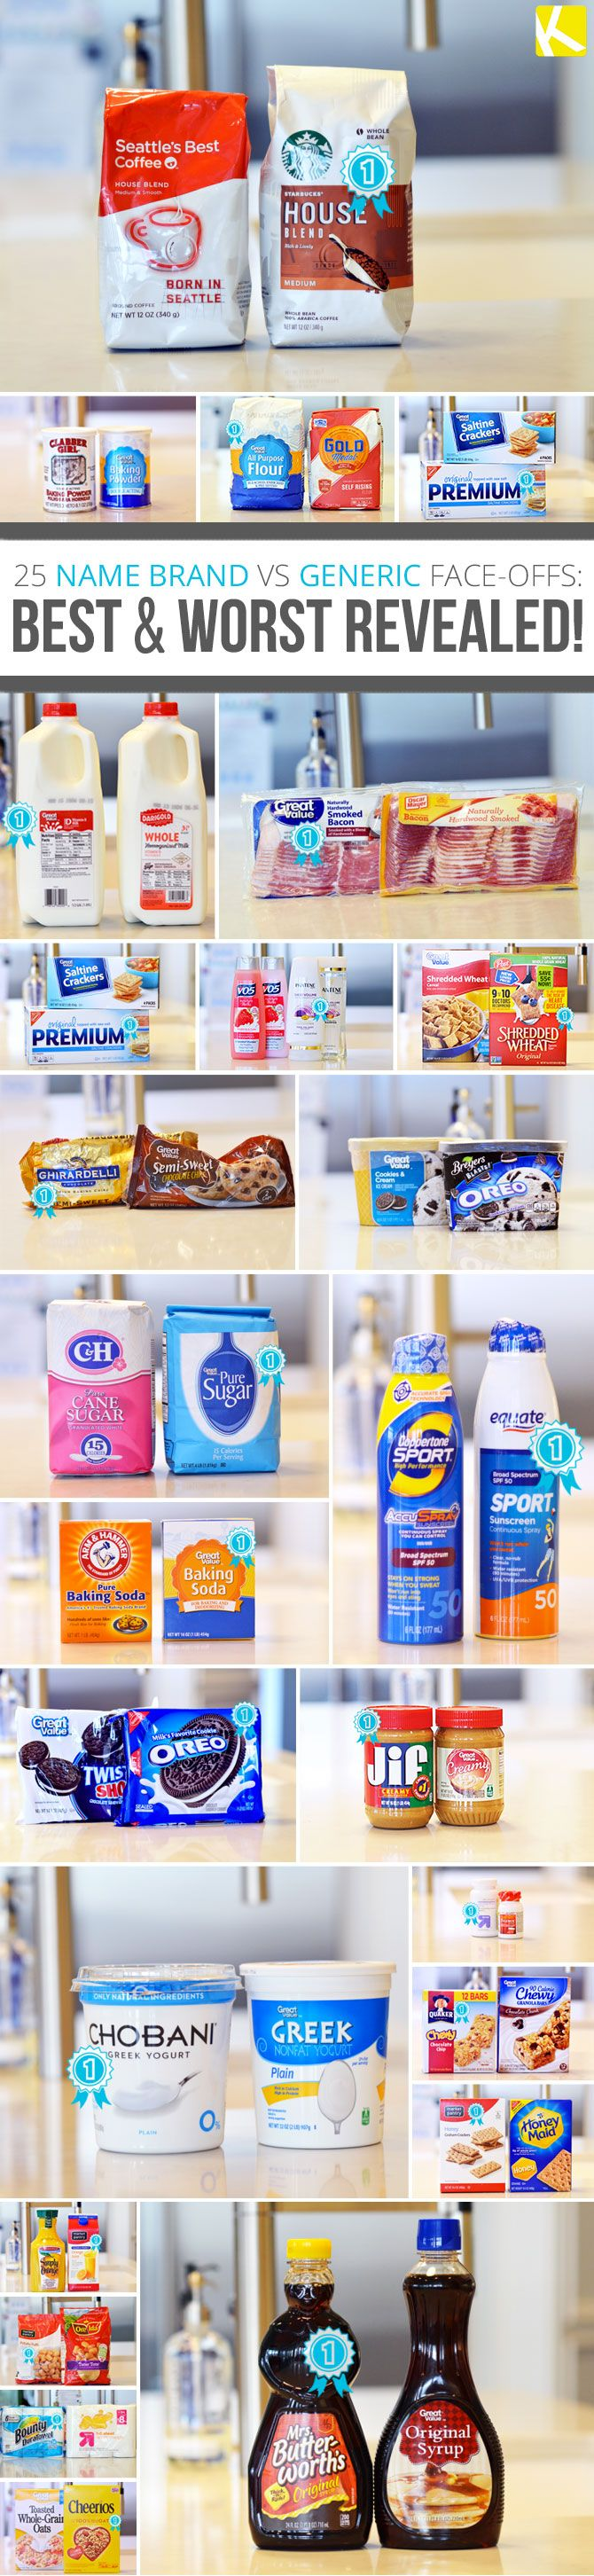 Are name brand products always the best tasting? Not always! – 25 NAME BRAND vs. GENERIC Face-Offs!